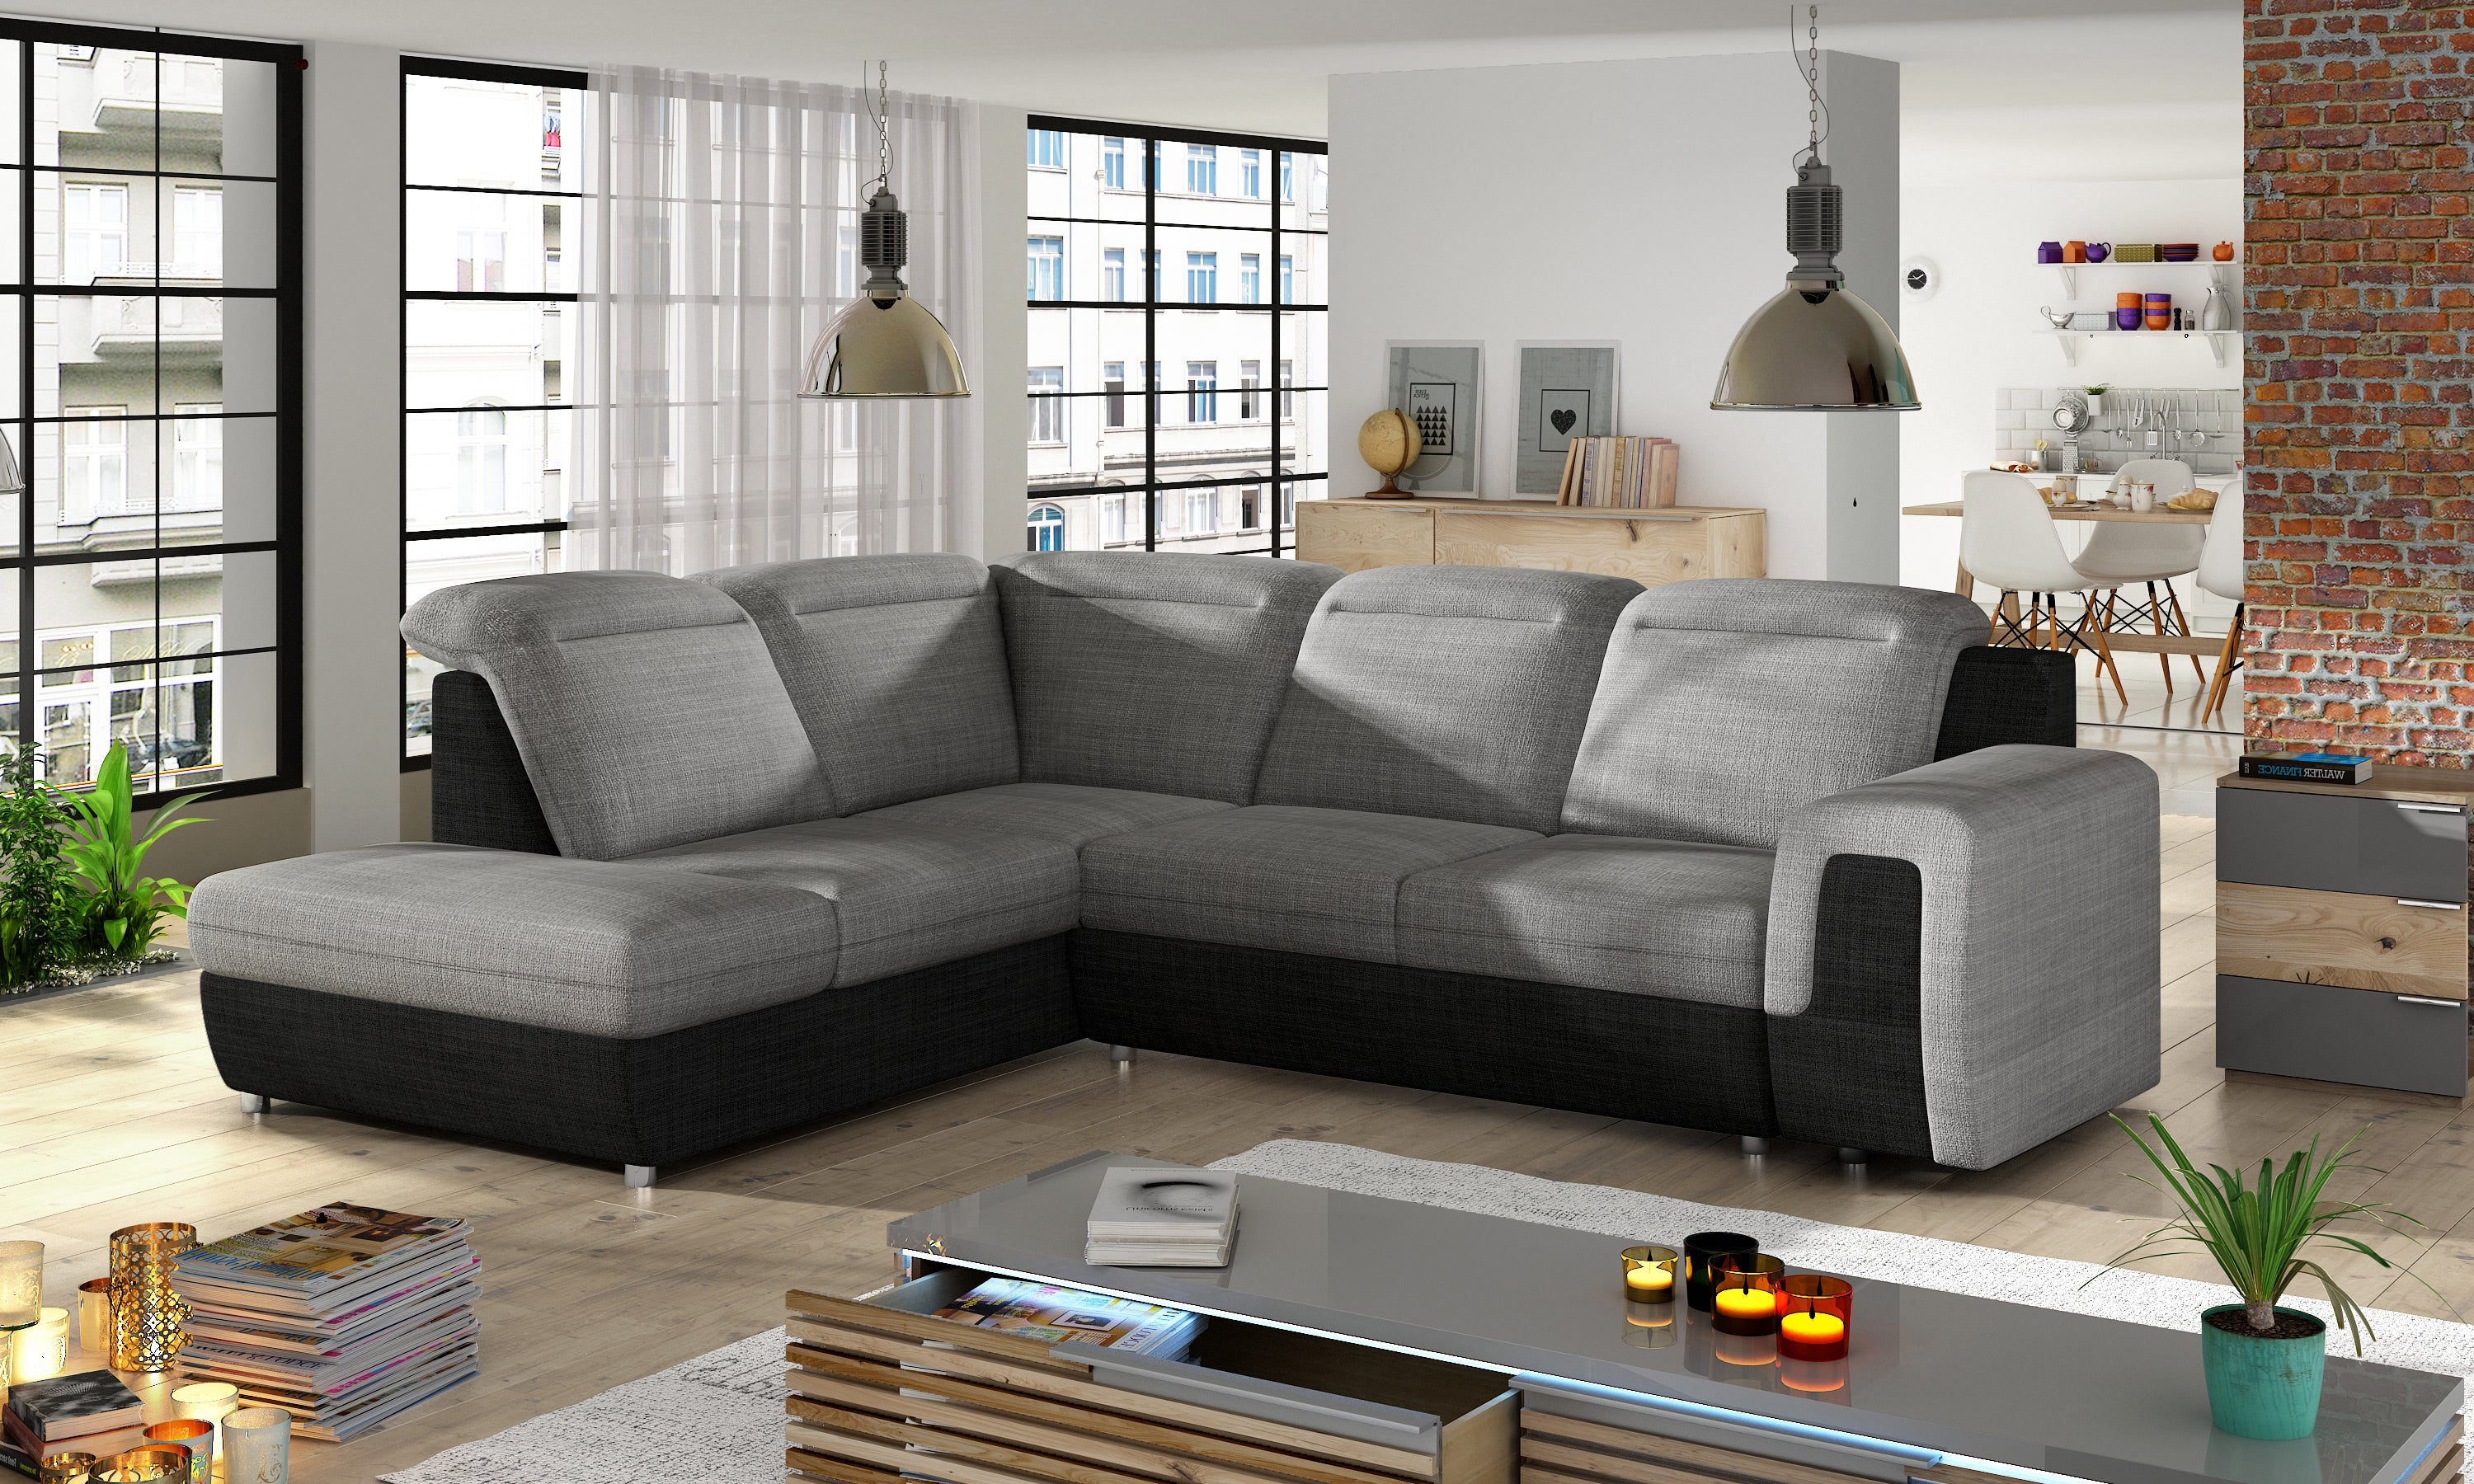 New Design Corner Sofa Bed Panama L Aberdeen Furniture